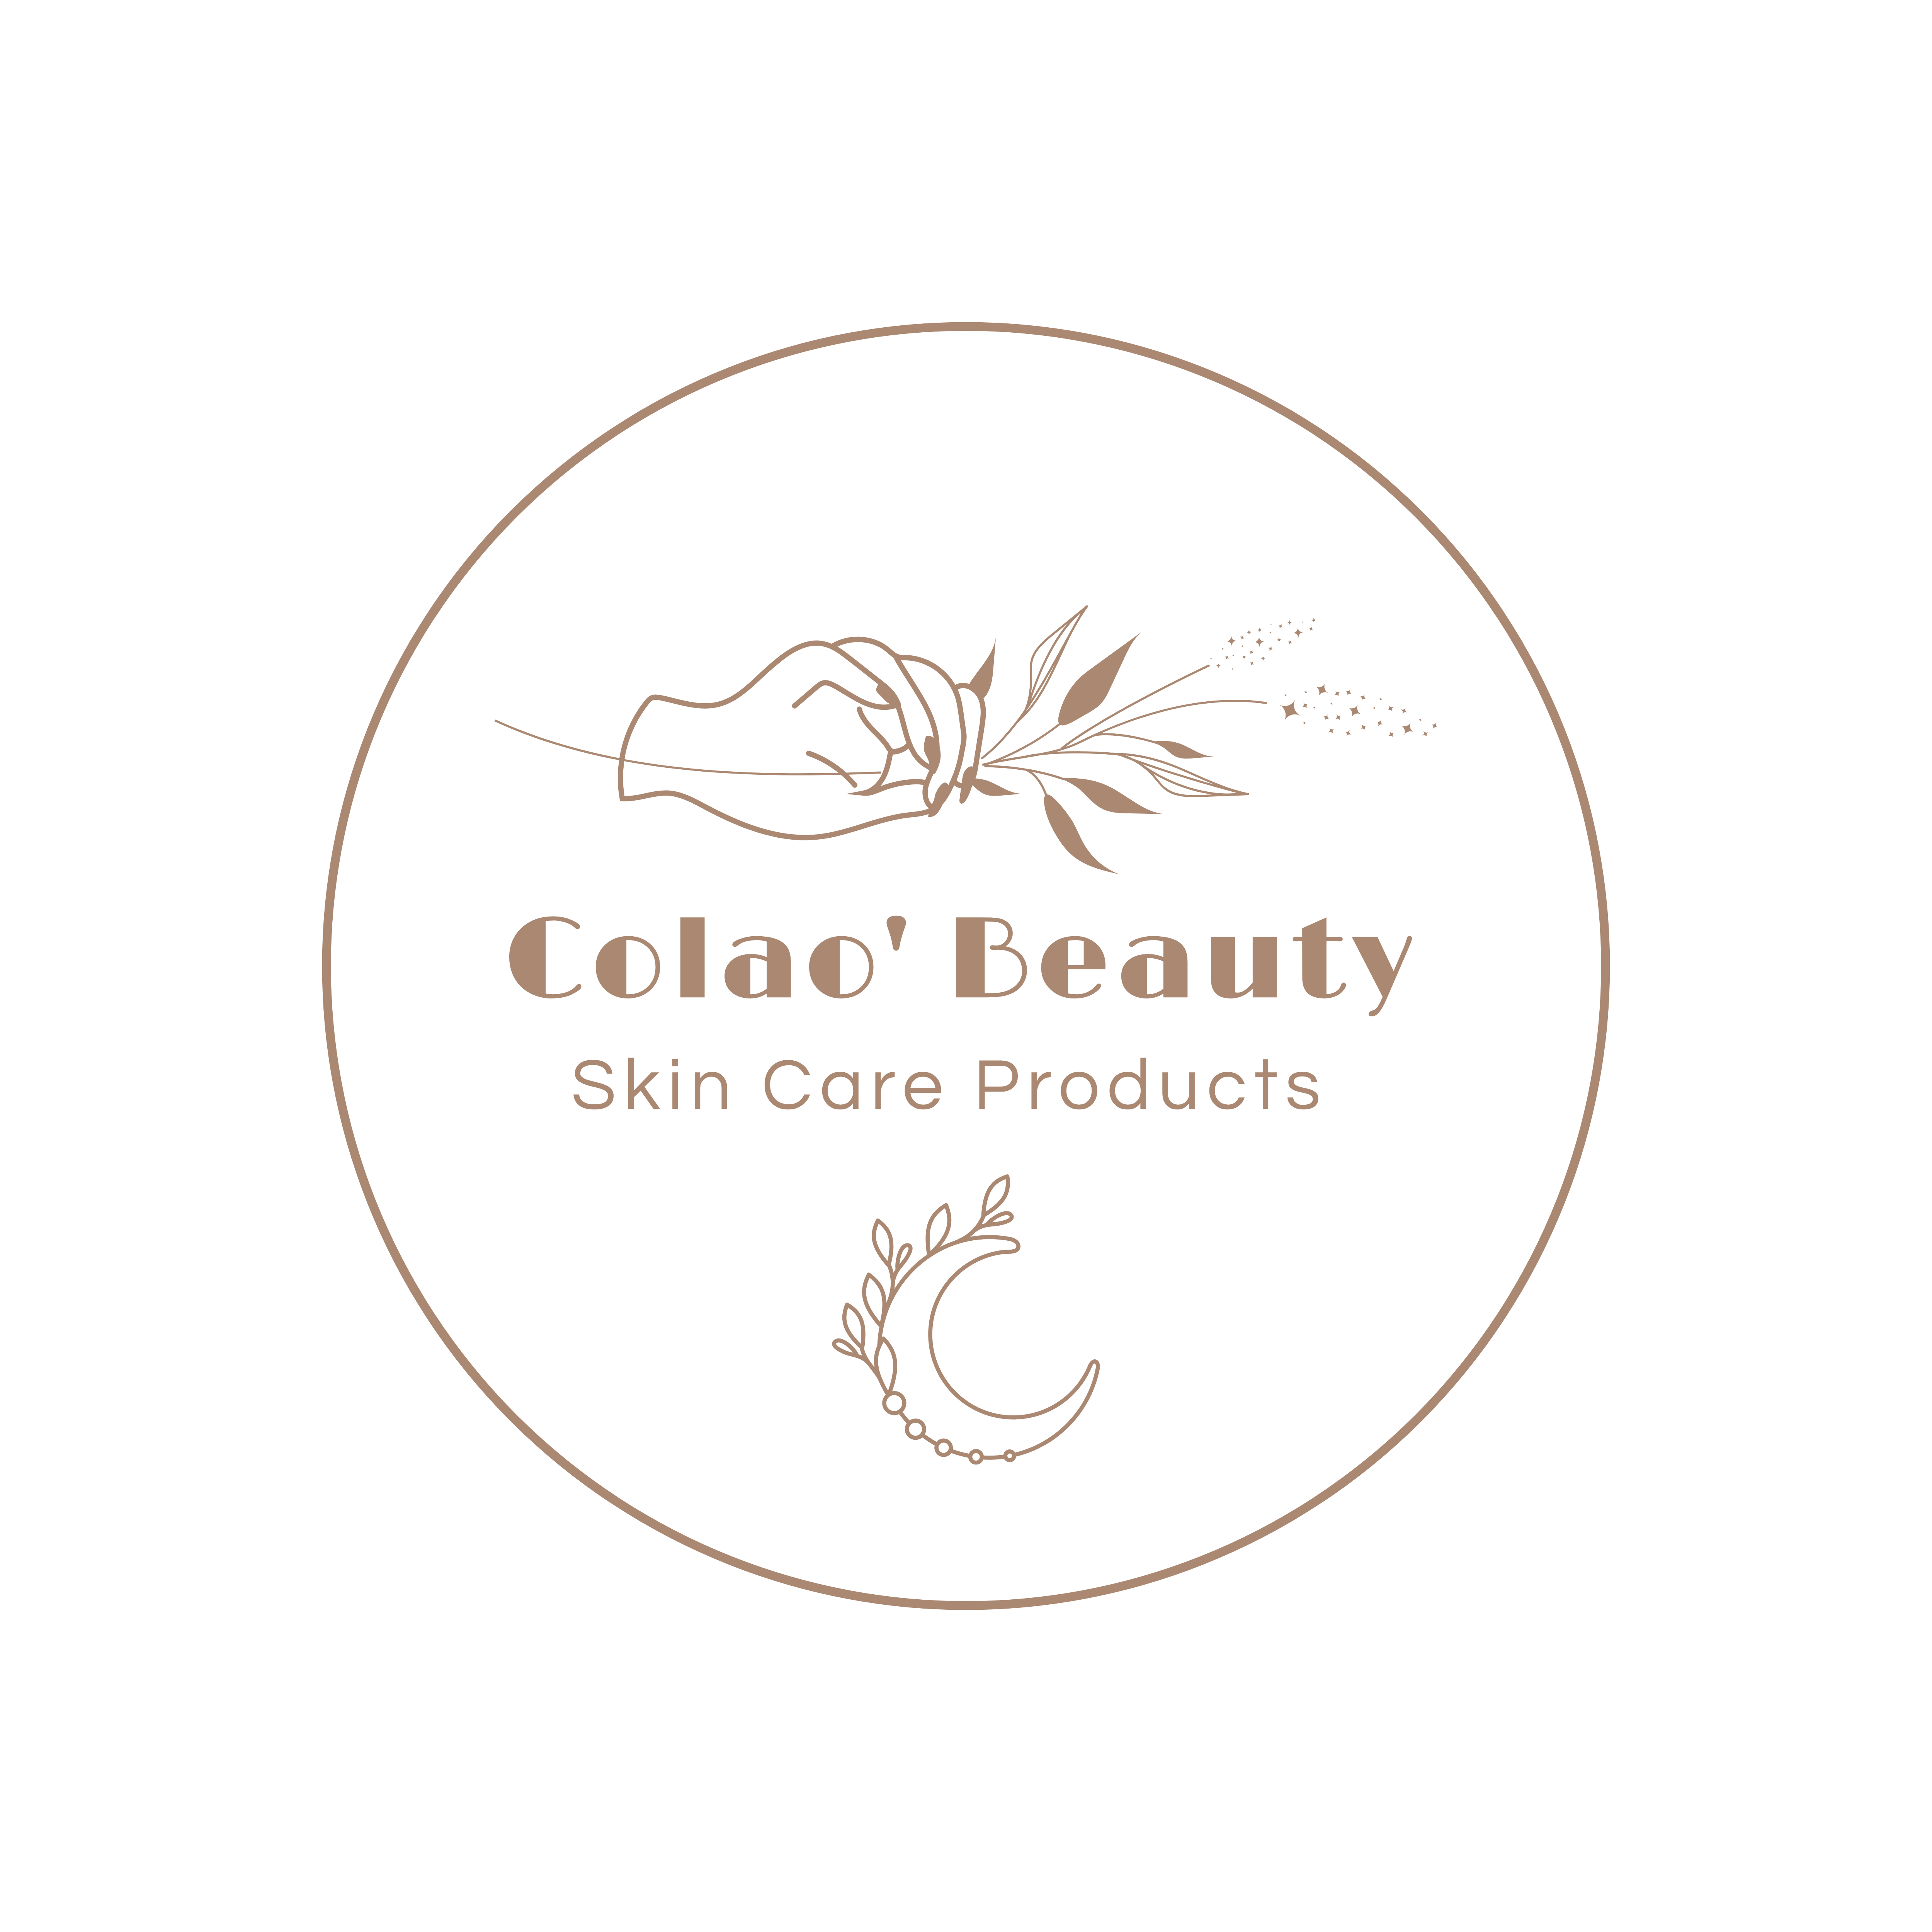 Colao' Beauty Products Logo